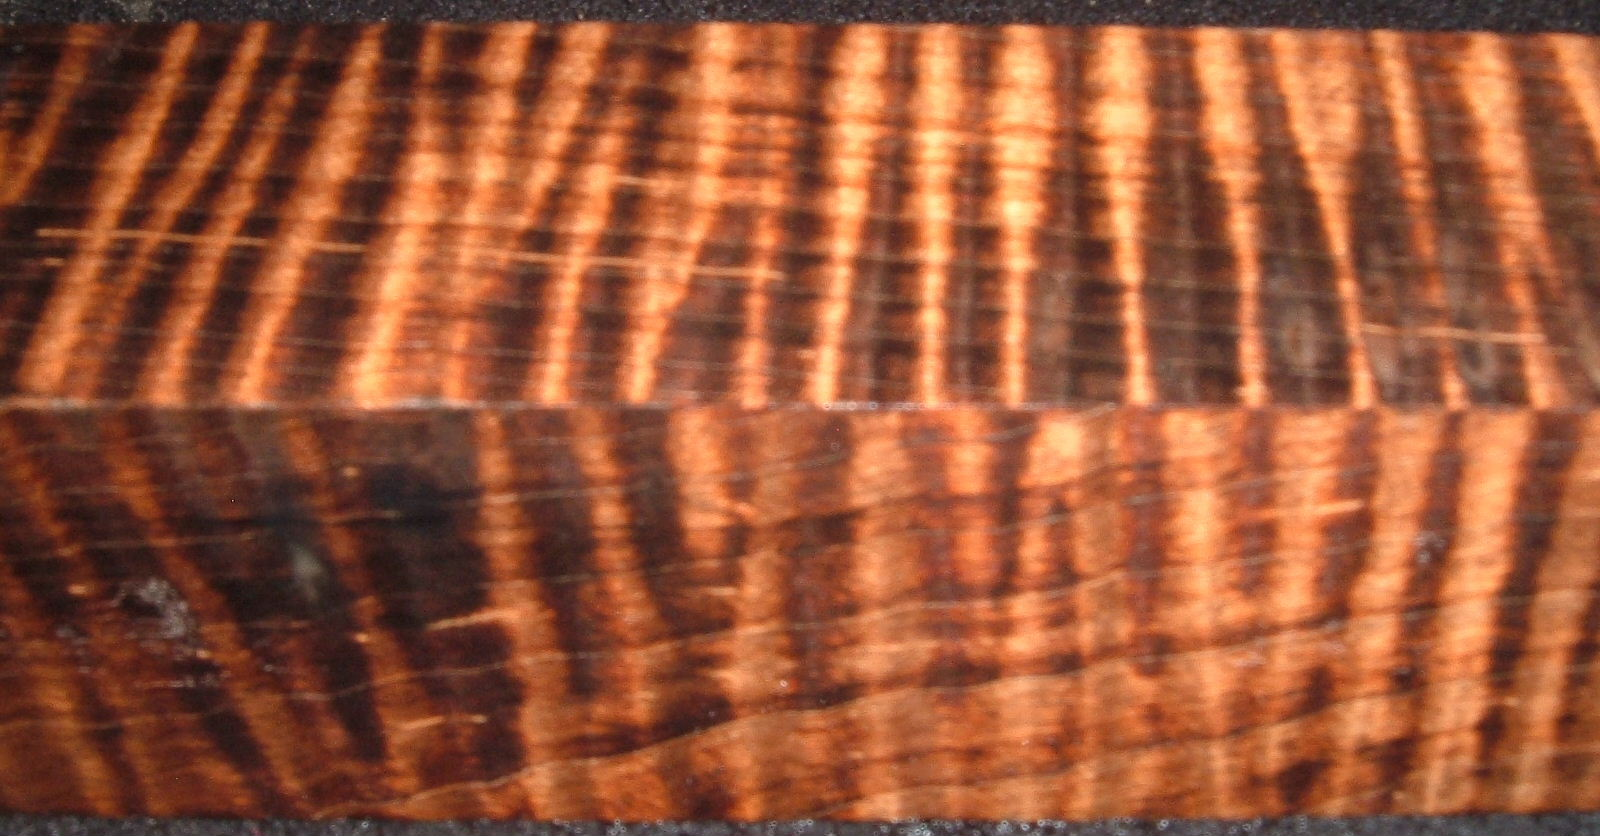 Z305, 1-7/8x1-7/8x6-1/4 ,Black Curly Tiger Maple Dyed Stabilized, wood turning block